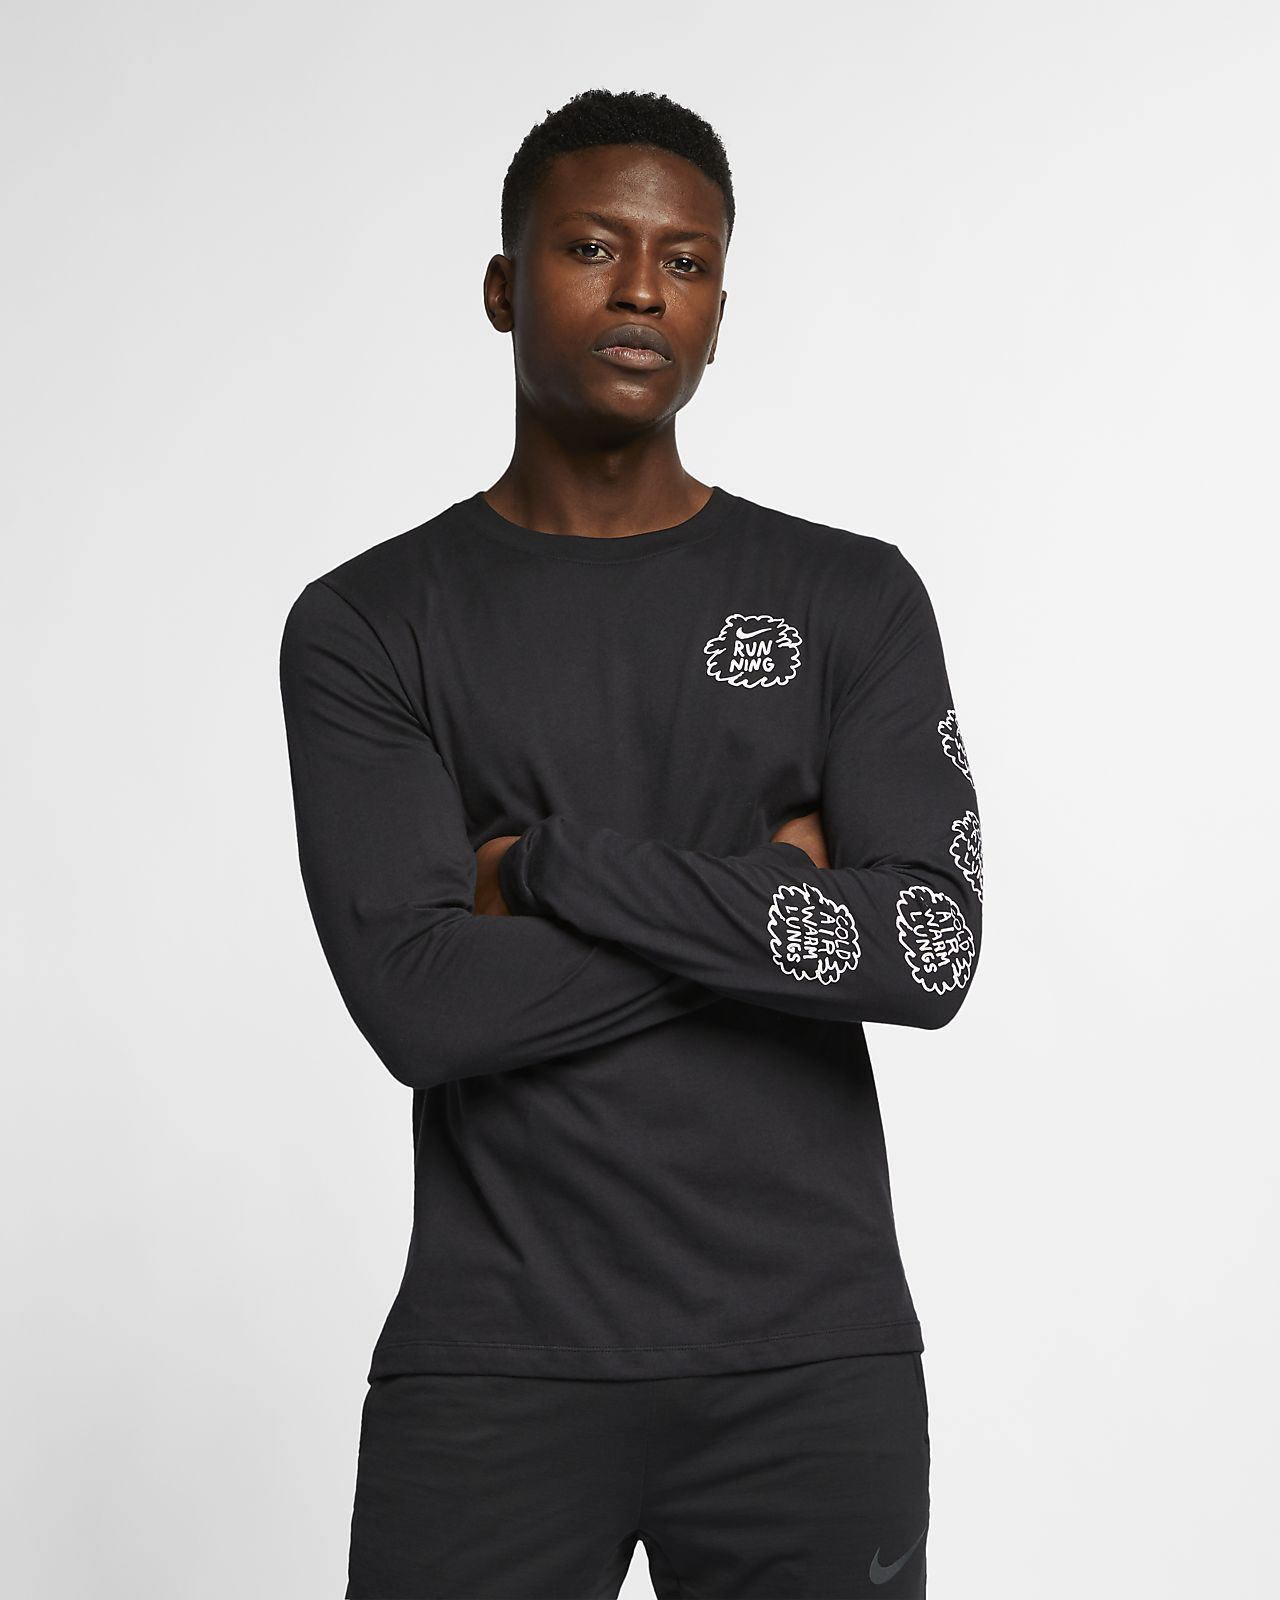 Pour À Longues Nike Dri Tee Homme Fit Nathan Bell Running Shirt De Manches EIW2YDH9